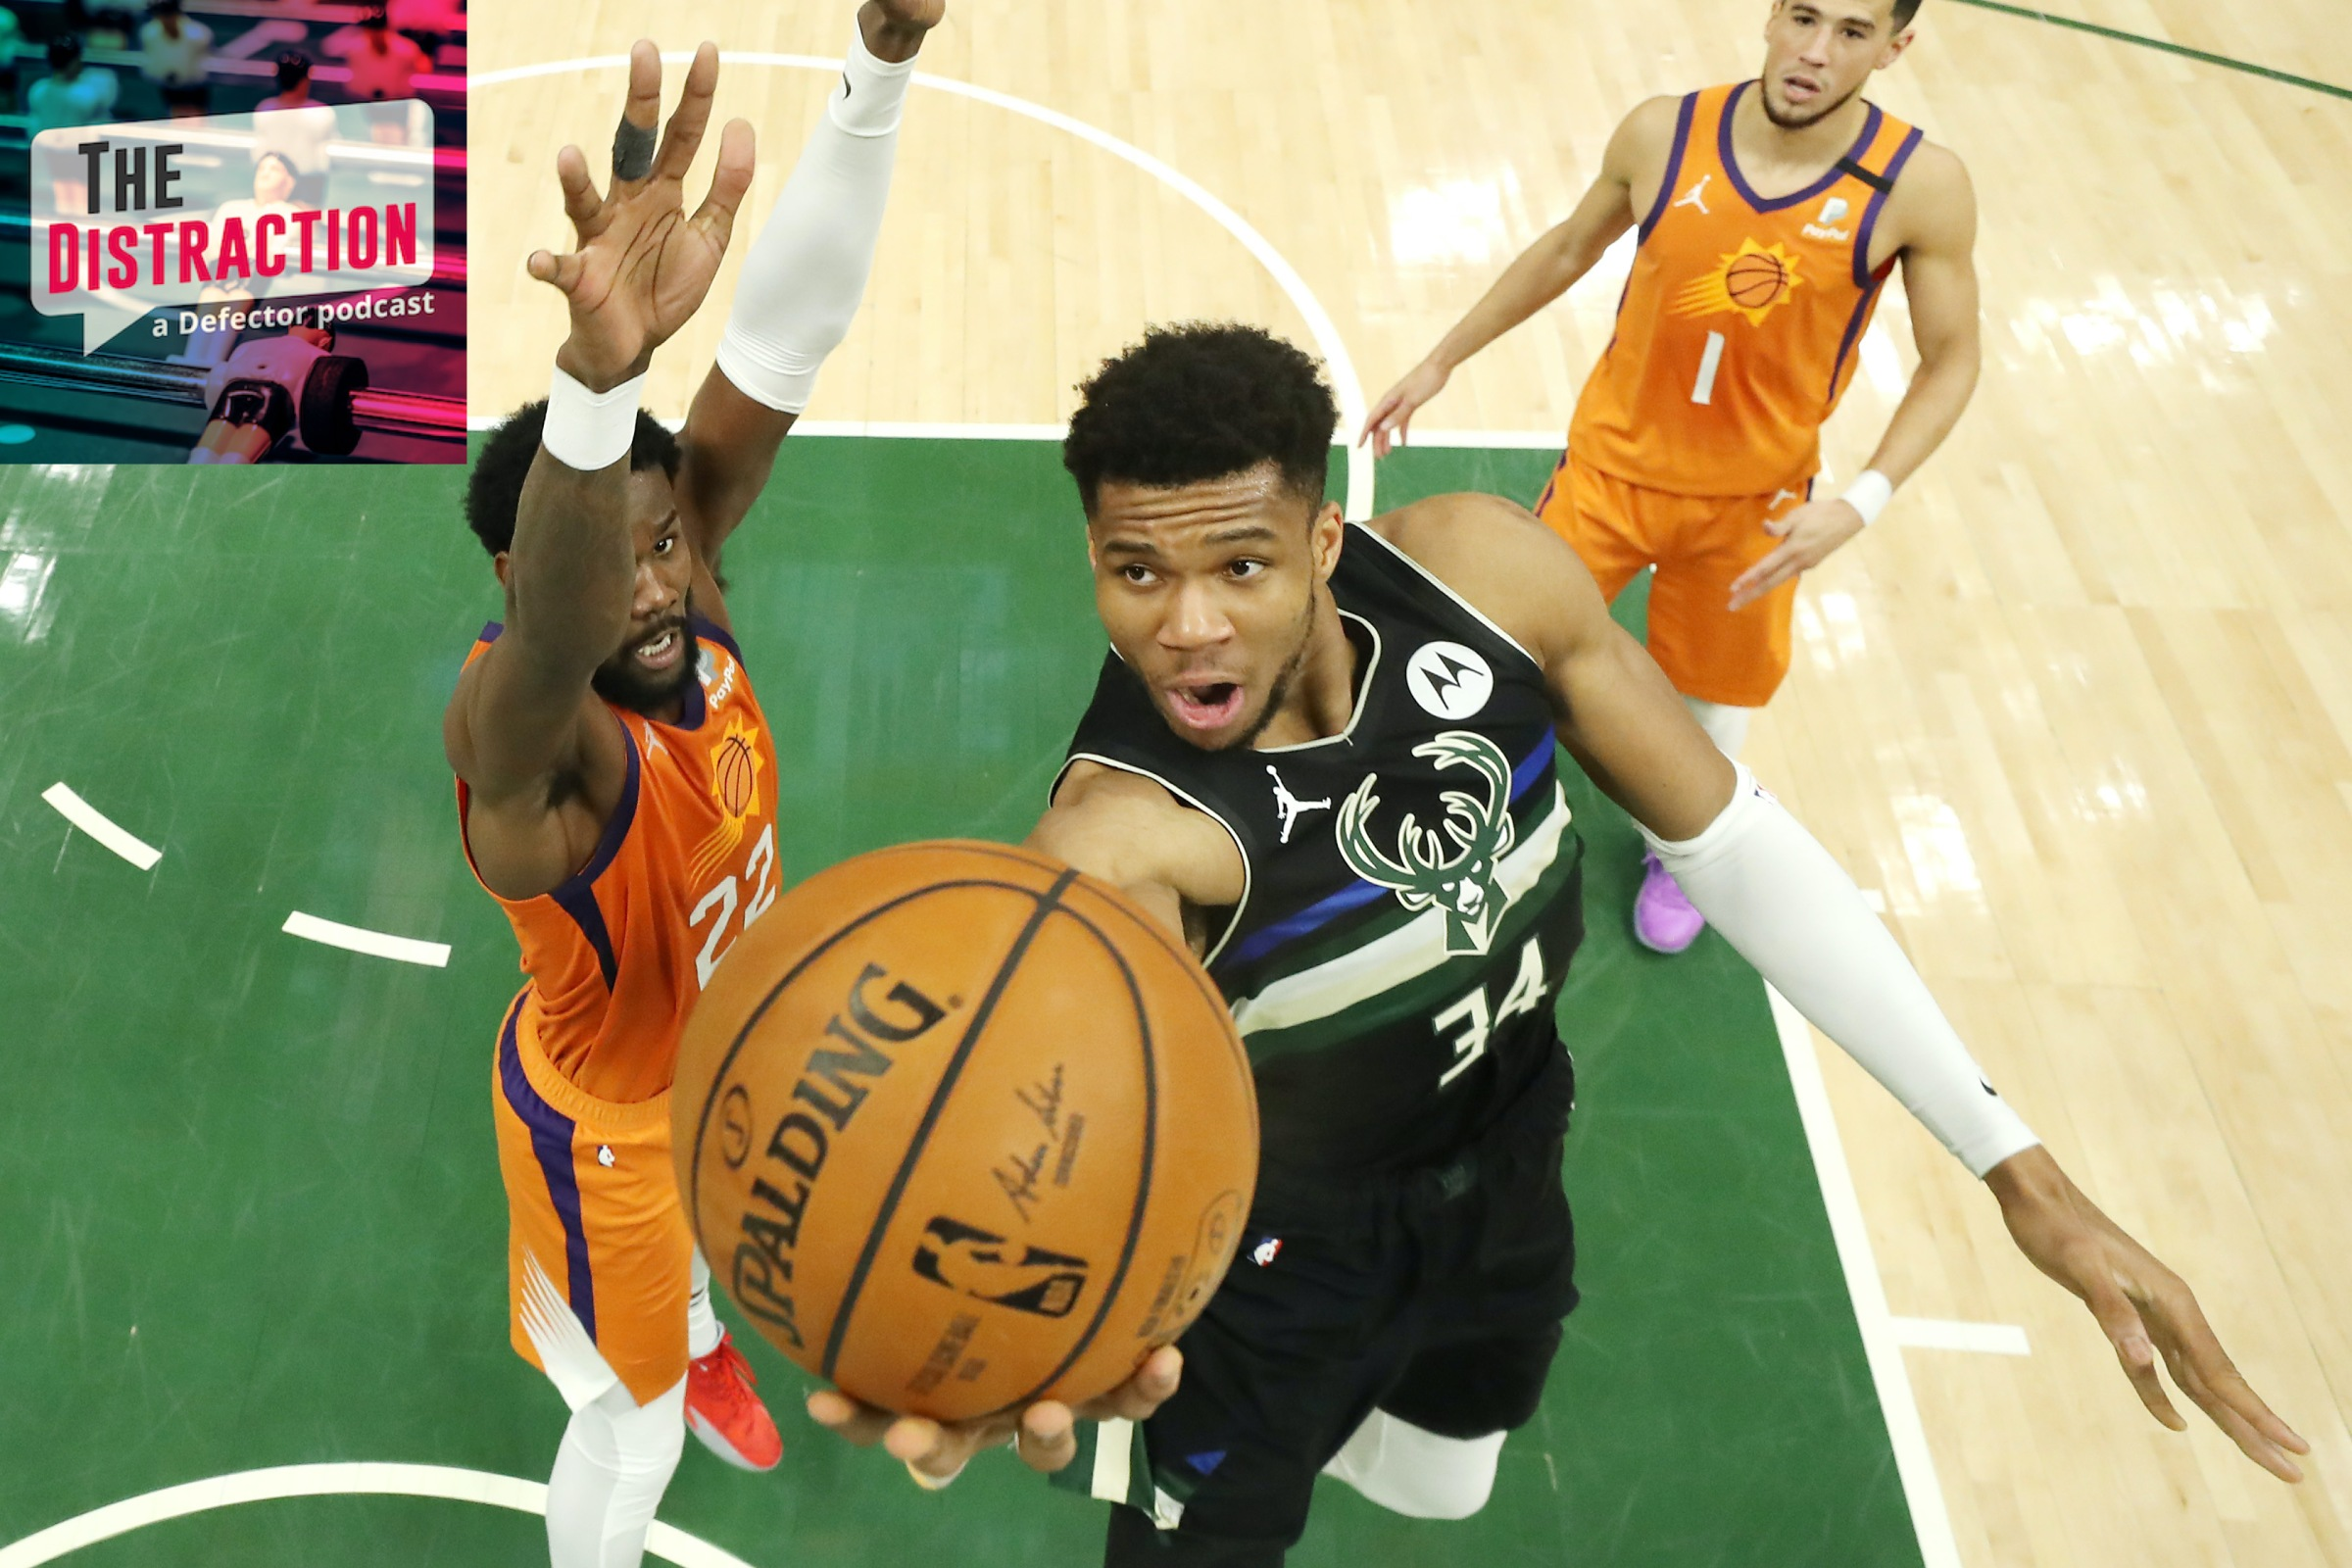 Giannis Antetokounmpo driving for one of his many baskets in the decisive Game 6 of the NBA Finals.